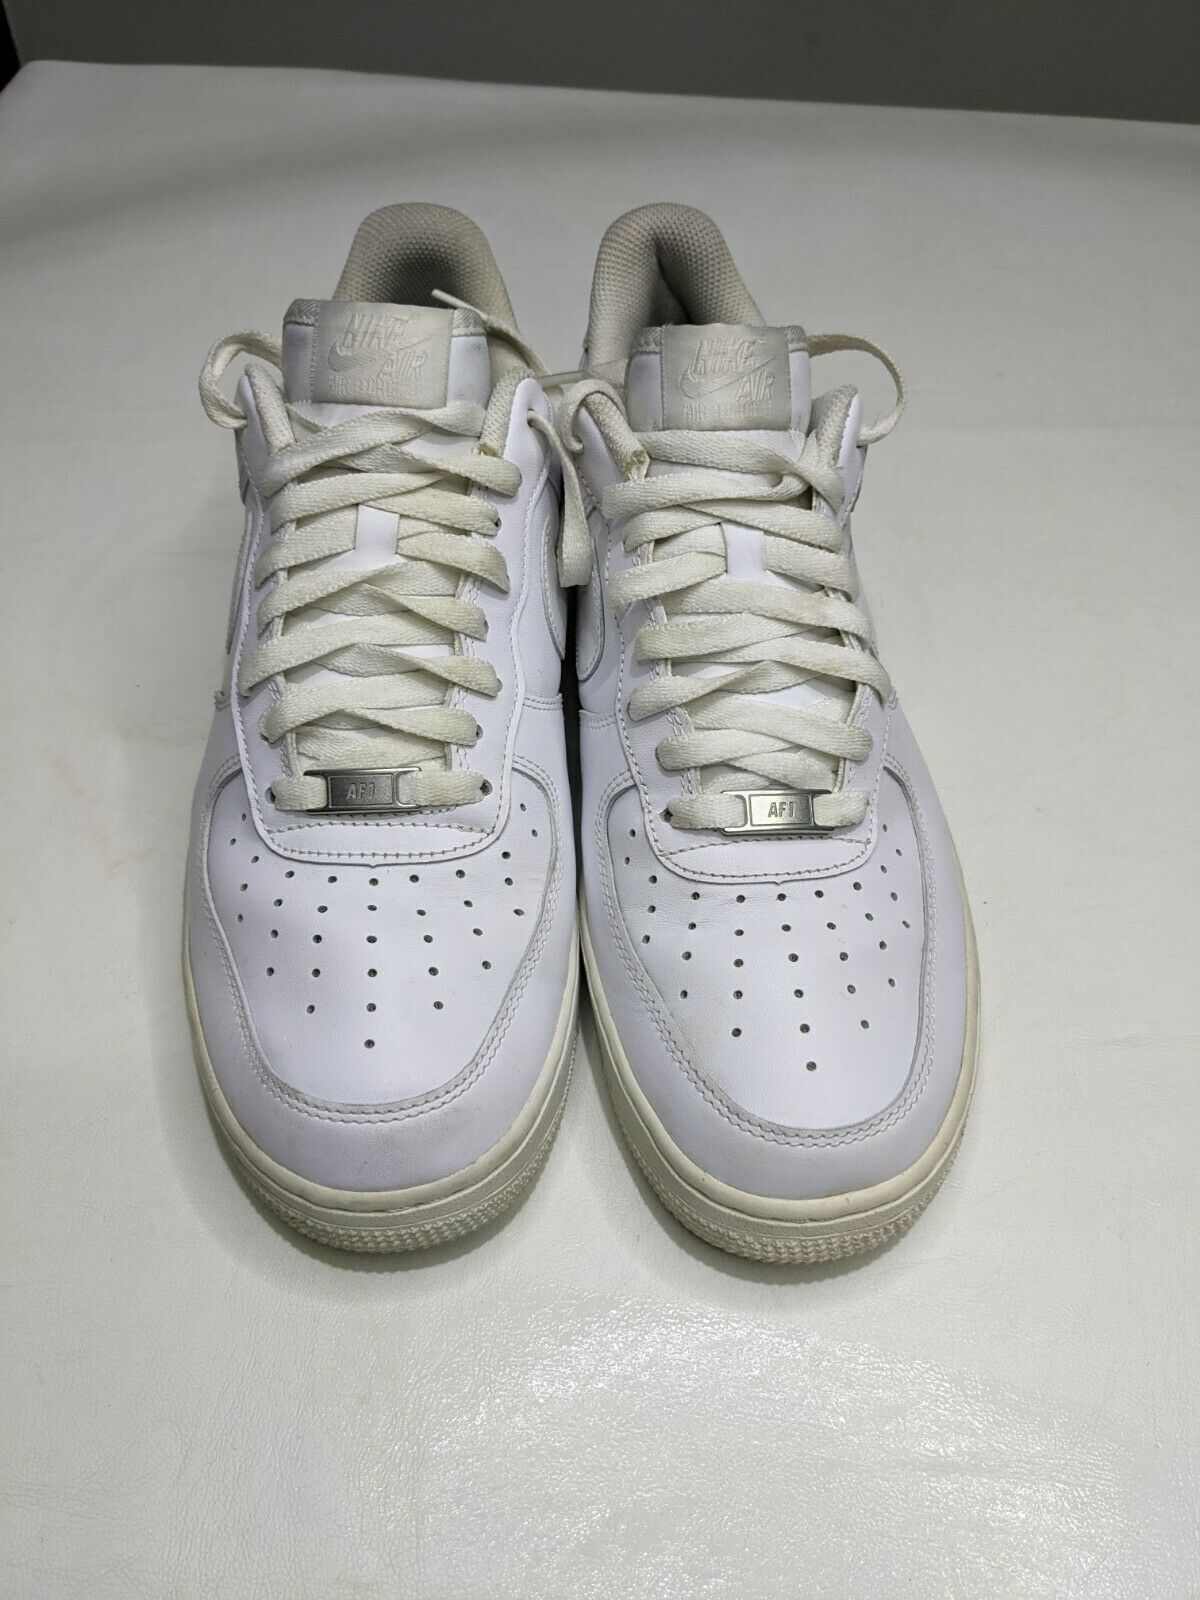 Nike Air Force 1 Low Size 11 - image 2